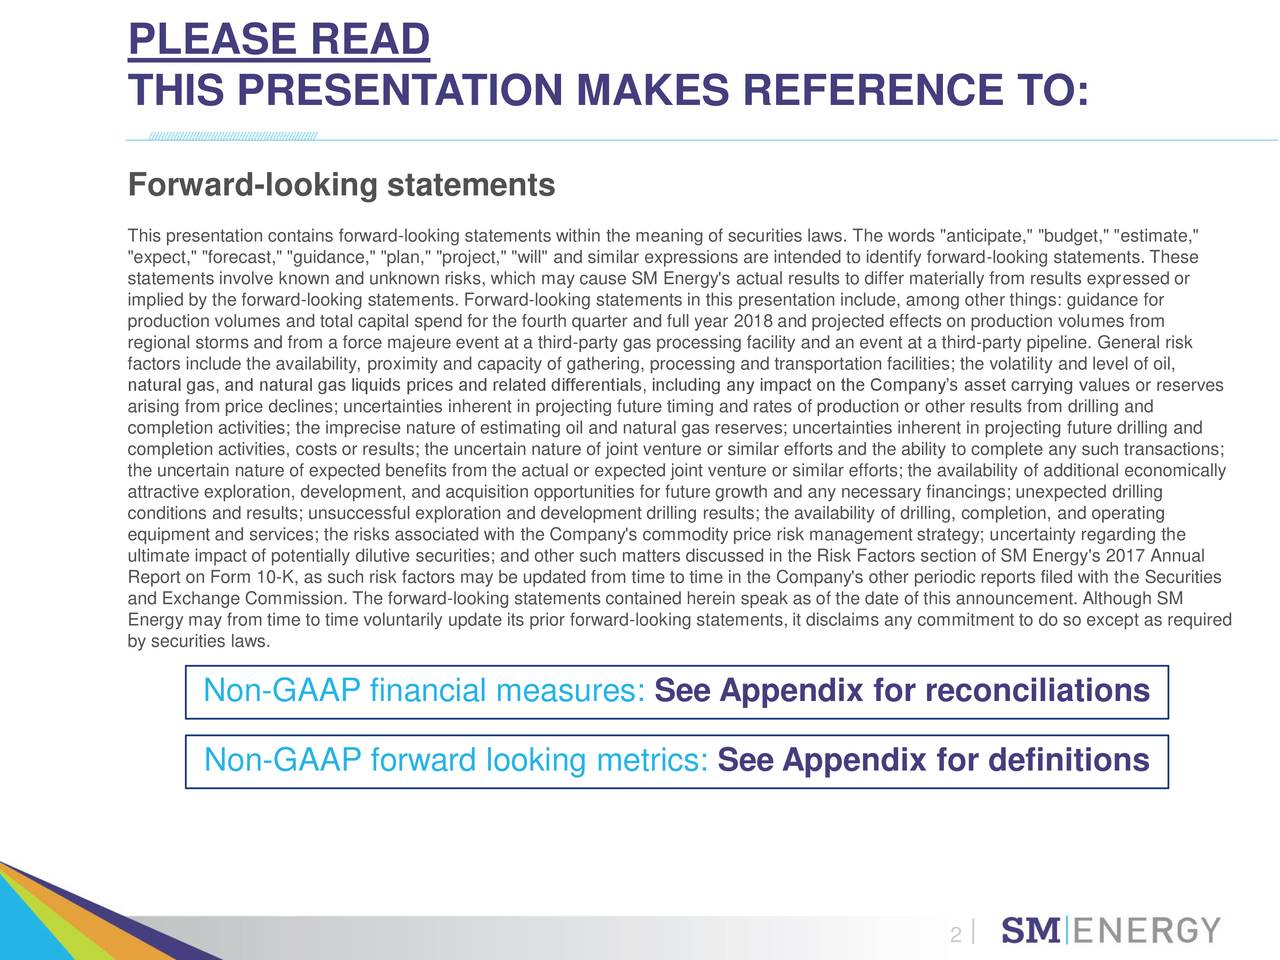 """THIS PRESENTATION MAKES REFERENCE TO: Forward-looking statements This presentation contains forward-looking statements within the meaning of securities laws. The words """"anticipate,"""" """"budget,"""" """"estimate,"""" """"expect,"""" """"forecast,"""" """"guidance,"""" """"plan,"""" """"project,"""" """"will"""" and similar expressions are intended to identify forward-looking statements. These statements involve known and unknown risks, which may cause SM Energy's actual results to differ materially from results expressed or implied by the forward-looking statements. Forward-looking statements in this presentation include, among other things: guidance for production volumes and total capital spend for the fourth quarter and full year 2018 and projected effects on production volumes from regional storms and from a force majeure event at a third-party gas processing facility and an event at a third-party pipeline. General risk factors include the availability, proximity and capacity of gathering, processing and transportation facilities; the volatility and level of oil, natural gas, and natural gas liquids prices and related differentials, including any impact on the Company's asset carrying values or reserves arising from price declines; uncertainties inherent in projecting future timing and rates of production or other results from drilling and completion activities; the imprecise nature of estimating oil and natural gas reserves; uncertainties inherent in projecting future drilling and completion activities, costs or results; the uncertain nature of joint venture or similar efforts and the ability to complete any such transactions; the uncertain nature of expected benefits from the actual or expected joint venture or similar efforts; the availability of additional economically attractive exploration, development, and acquisition opportunities for future growth and any necessary financings; unexpected drilling conditions and results; unsuccessful exploration and development drilling results; the availability of dri"""